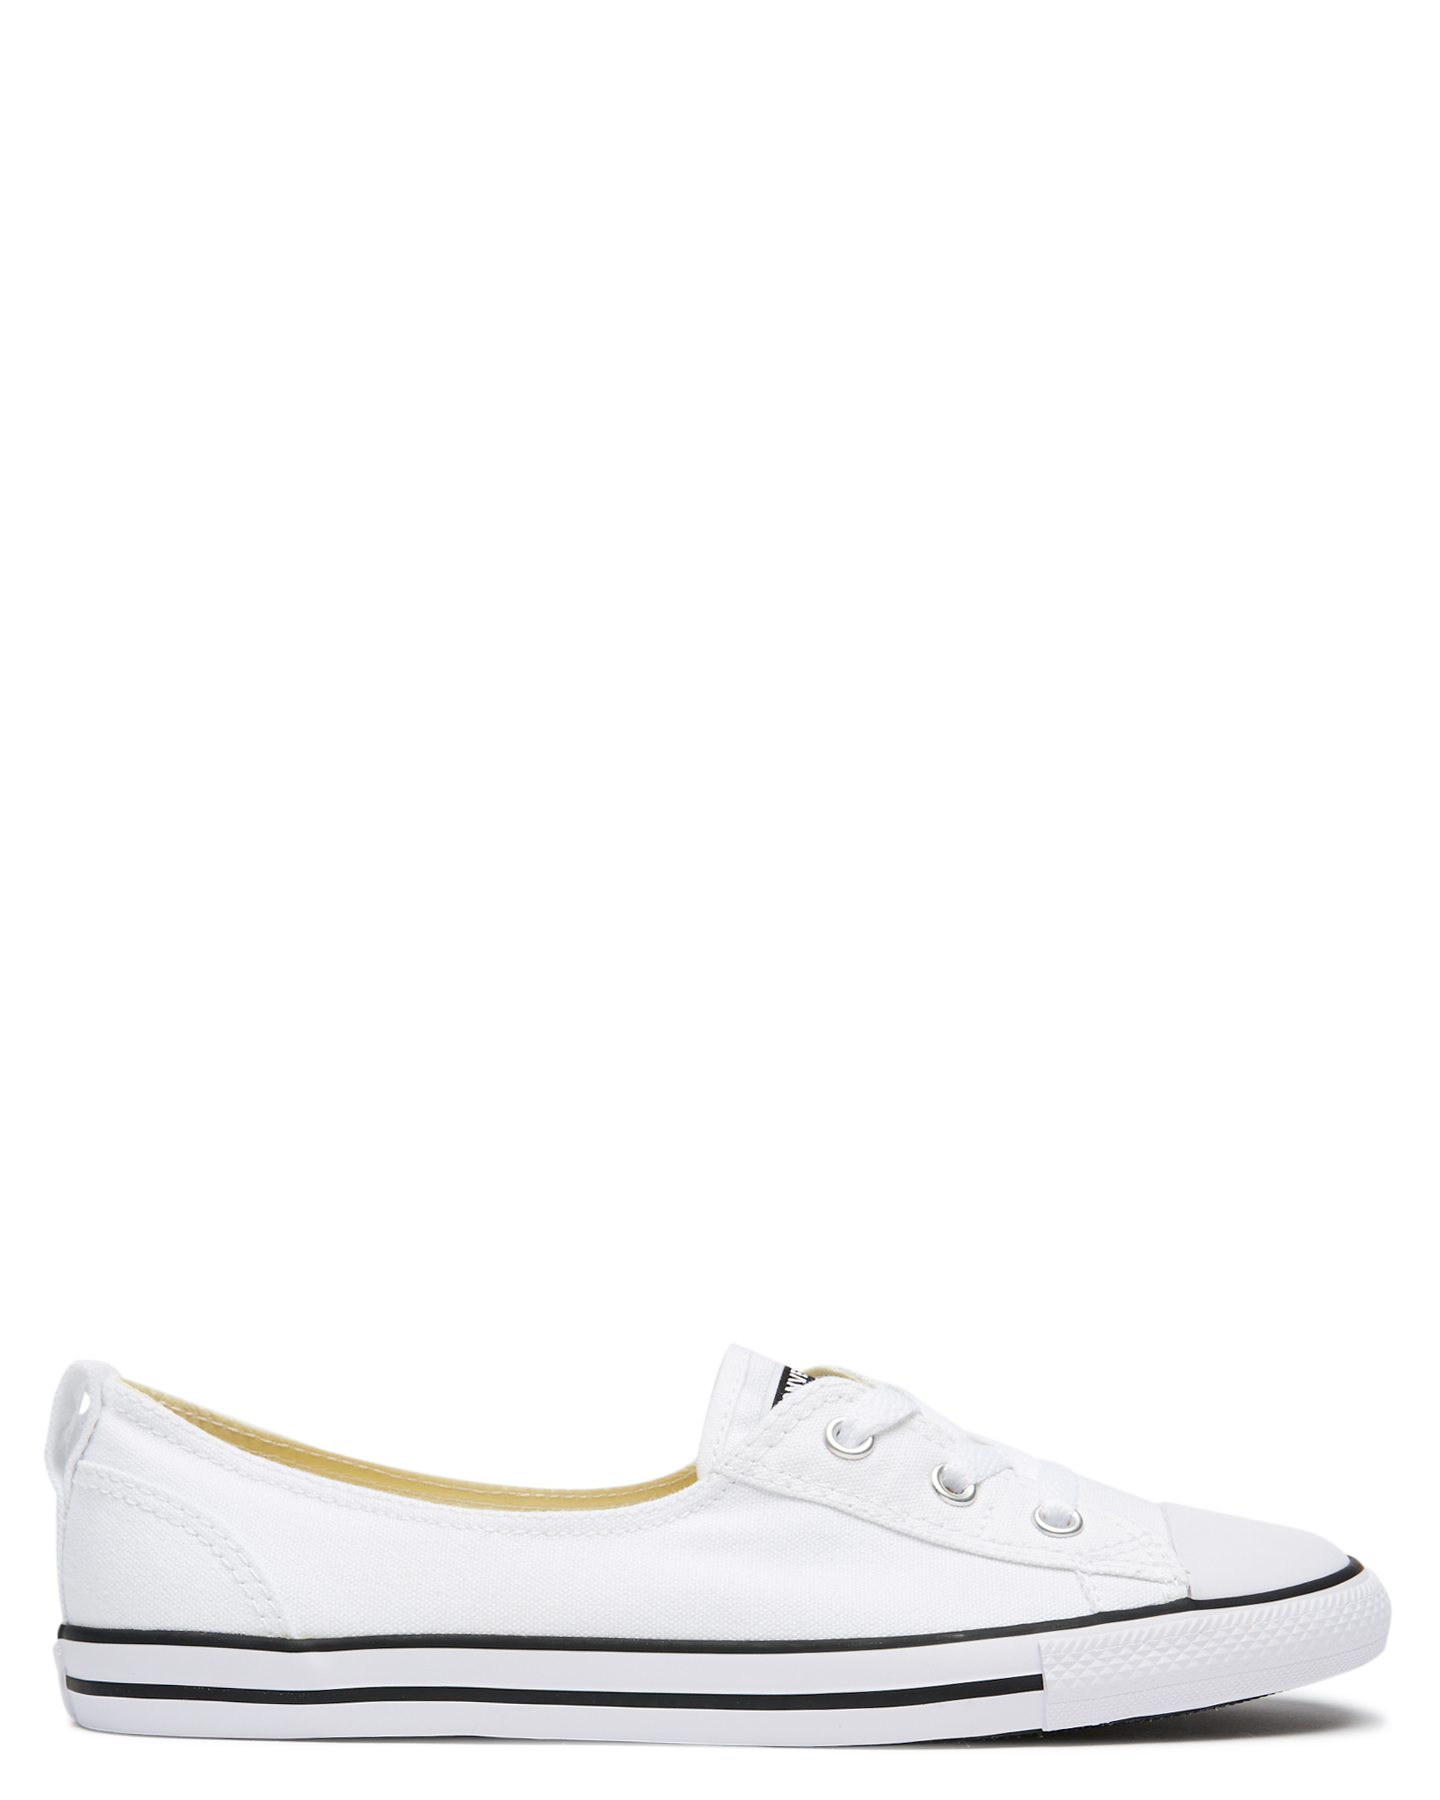 Converse Chuck Taylor All Star Ballet Lace Shoe White Womens ... c888459f58